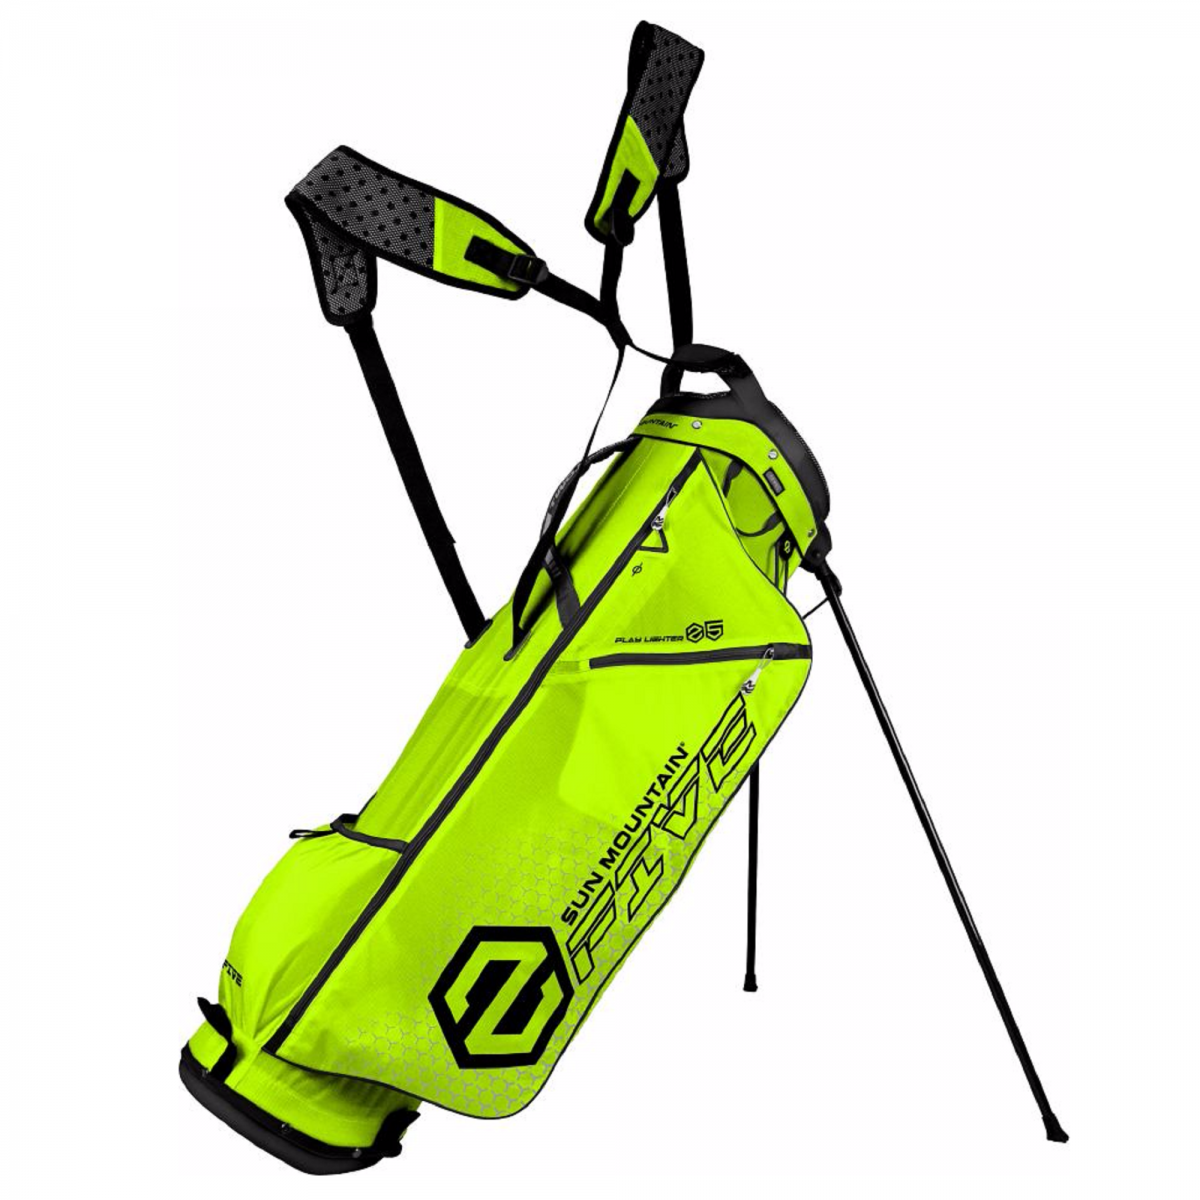 a9203227b079 Golf bags · Sun Mountain 2-Five Stand Bag 2016 from  golfskipin